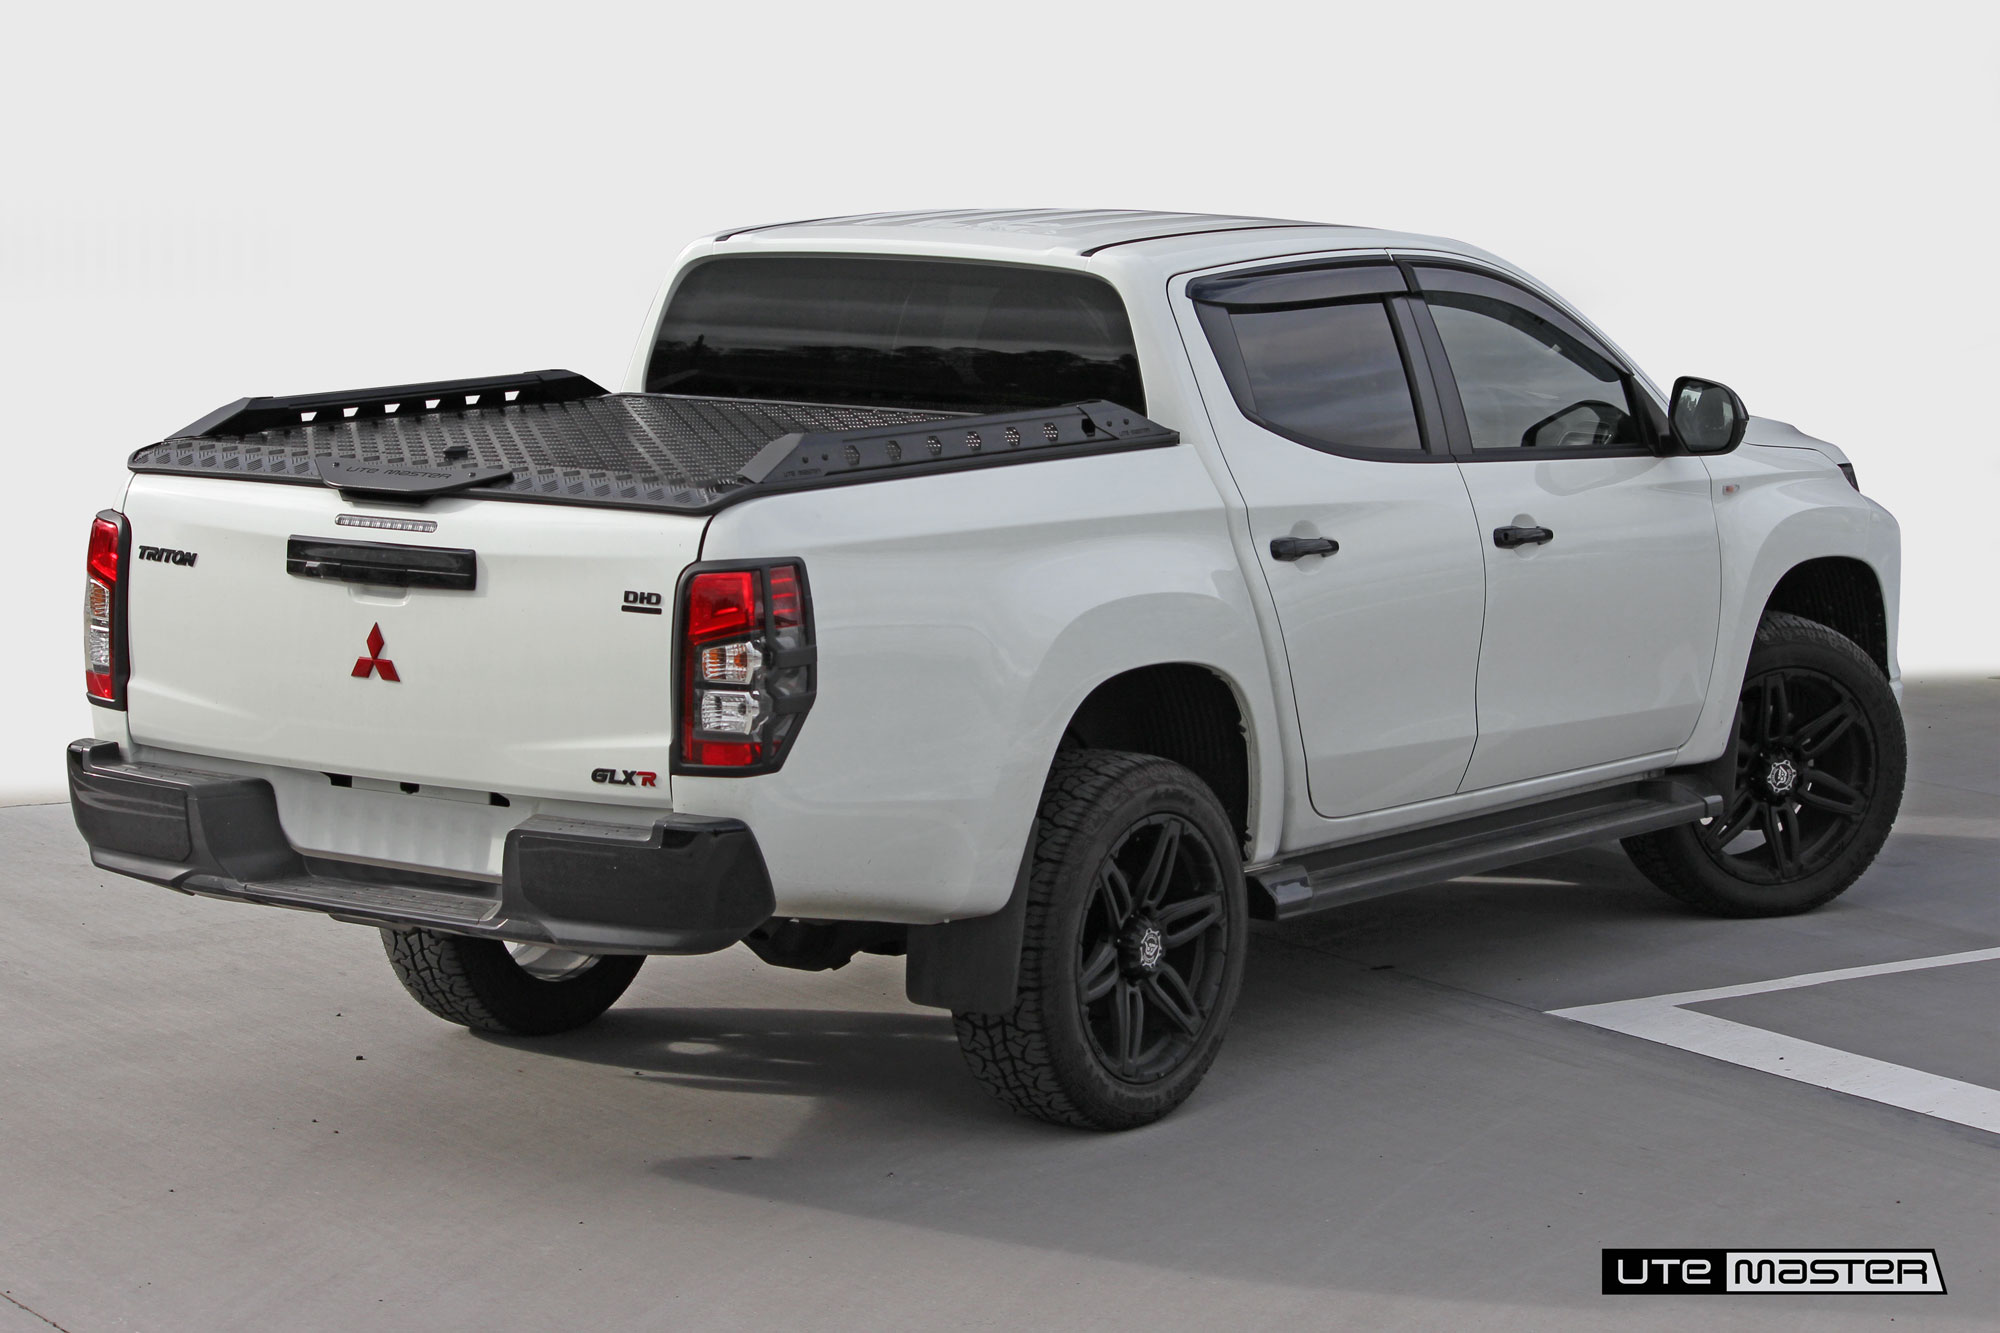 MitsubishiTriton Hard Lid_Black and White_Load-Lid by Utemaster Roller Shutter and Tonneau Cover Alternative